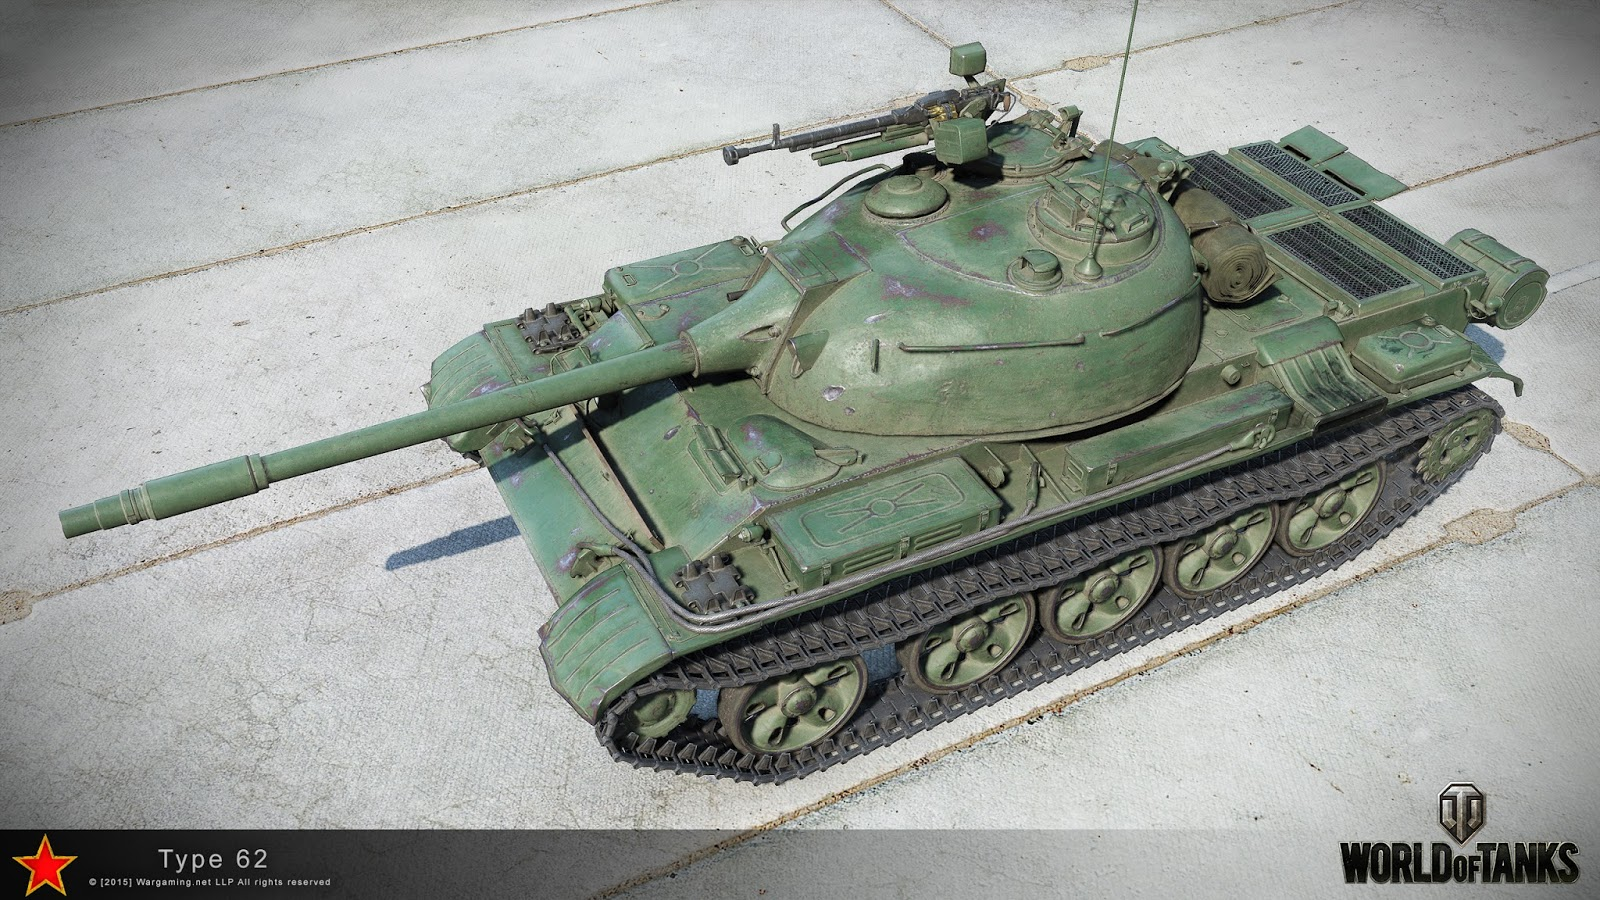 matchmaking wot type 62 The type 62 also shares the same module weaknesses as the type 59, with a large ammunition rack at the back of the turret it is not it used to see tier 10 battles but after the 918 update, all light tanks received the same matchmaking as other tank classes, and the type 62 now only sees up to tier 9.